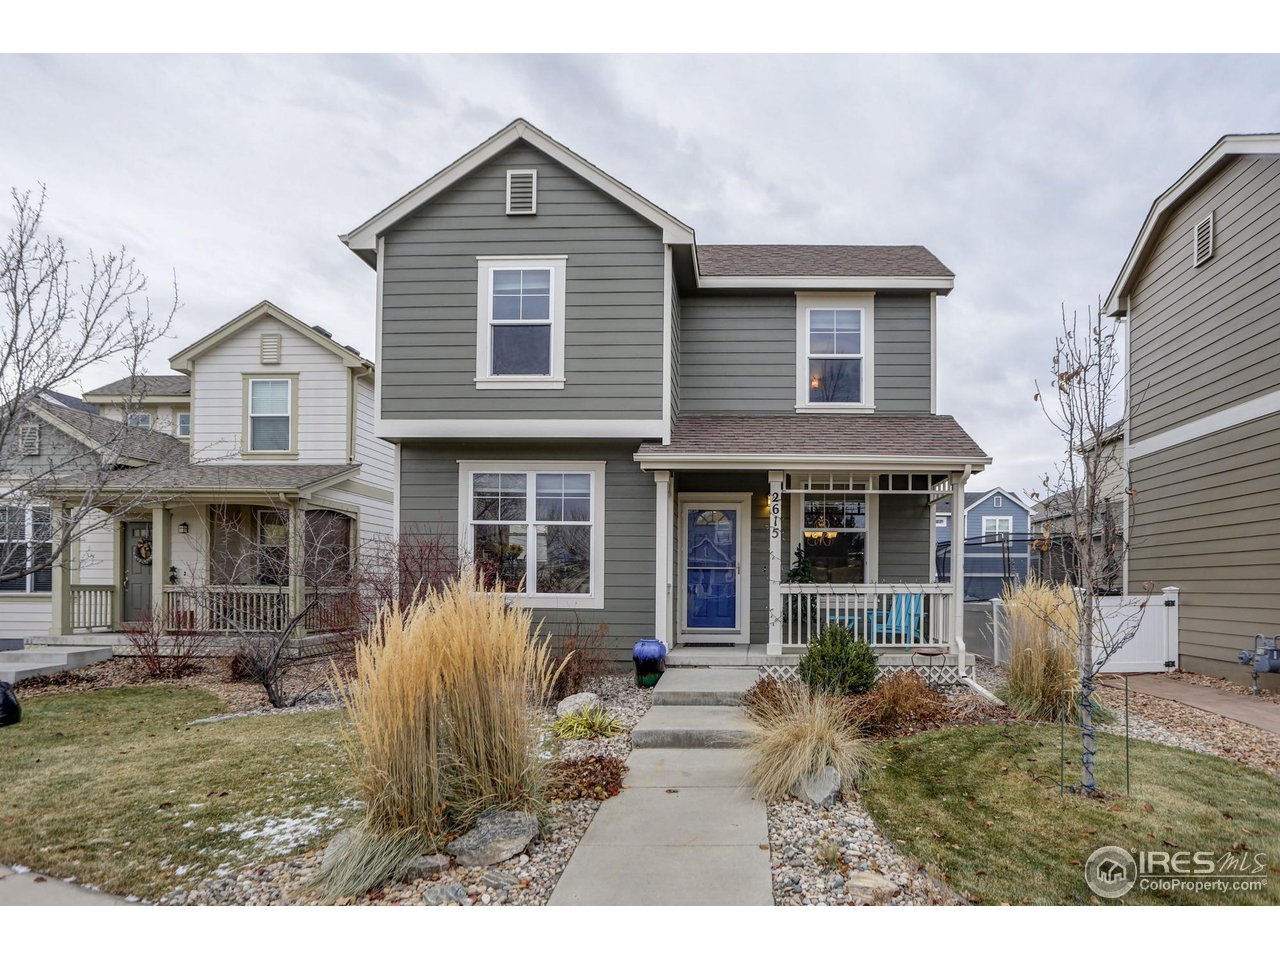 2615 Rock Creek Dr, Fort Collins CO 80528